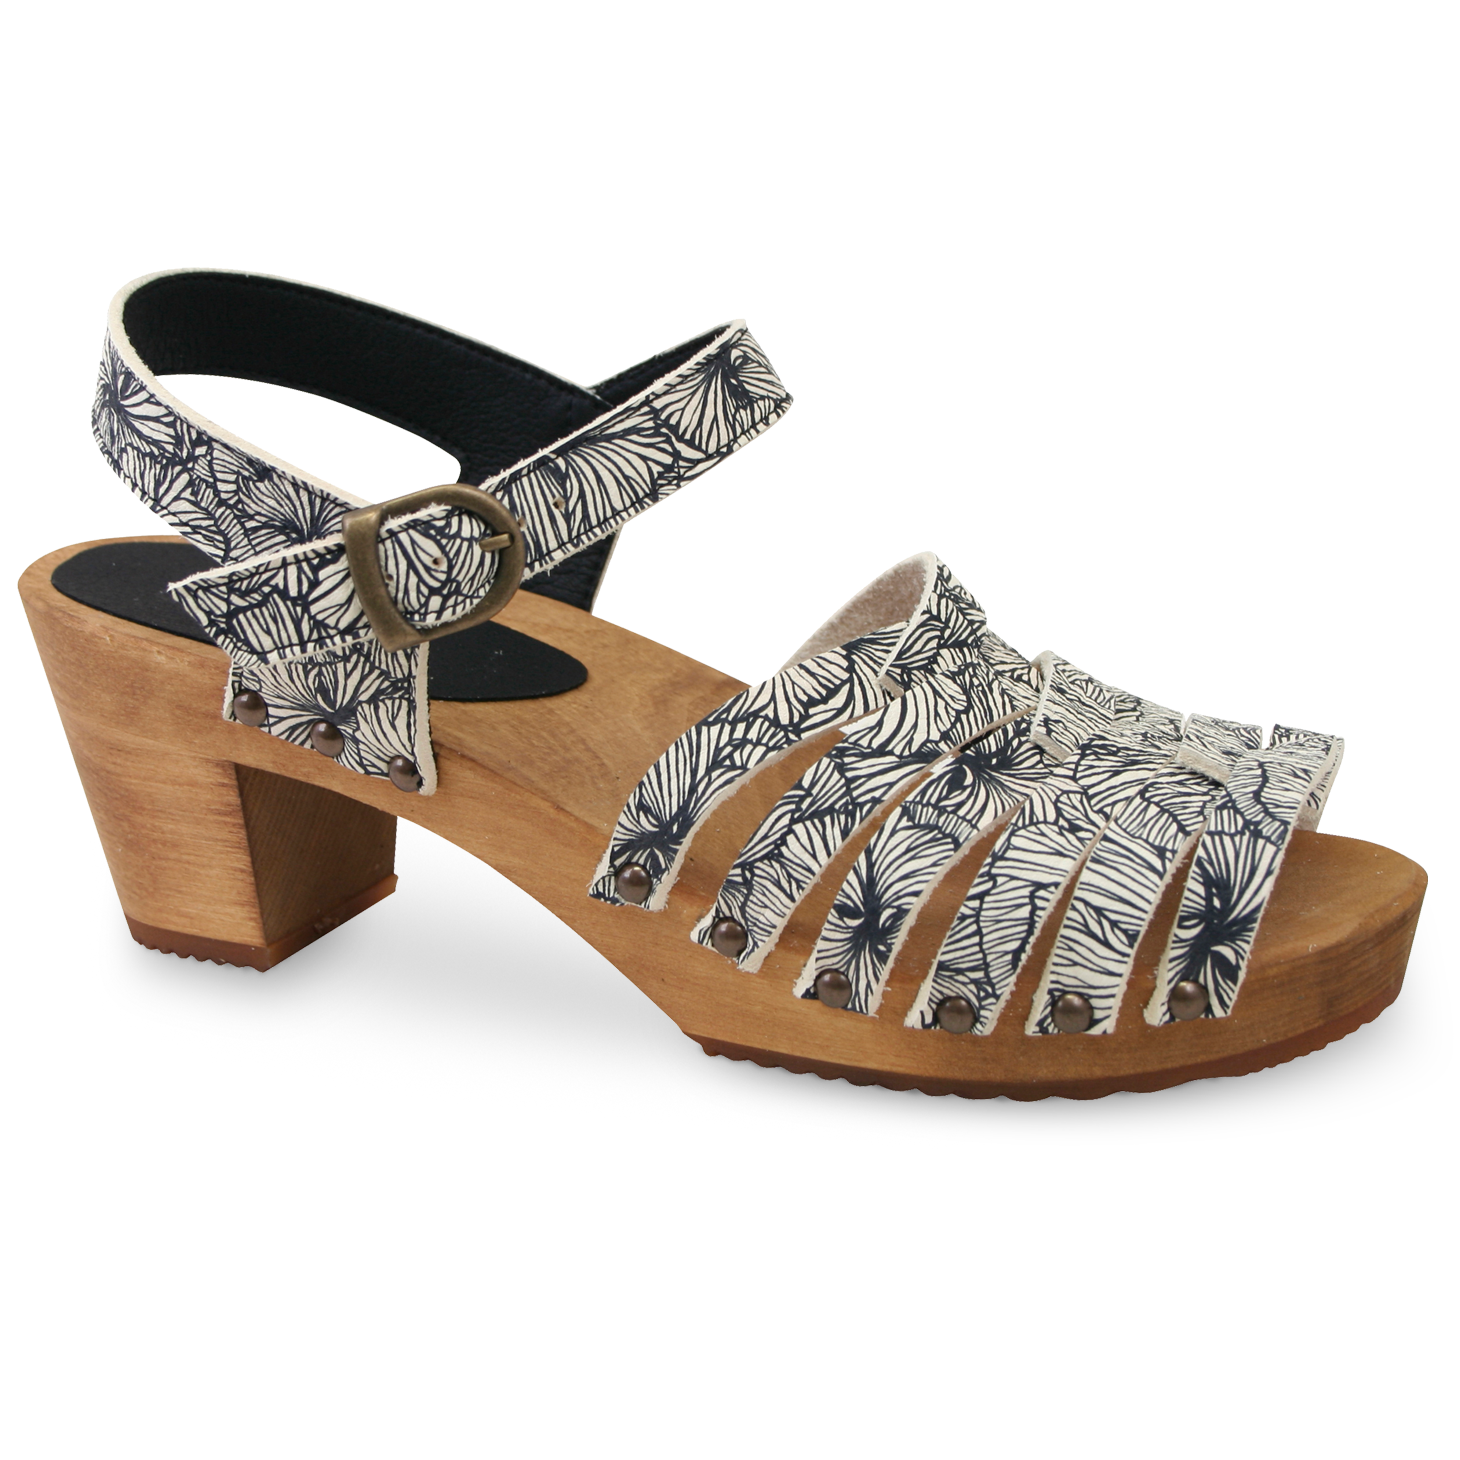 Sanita Mida Women's in Black/White Sandal